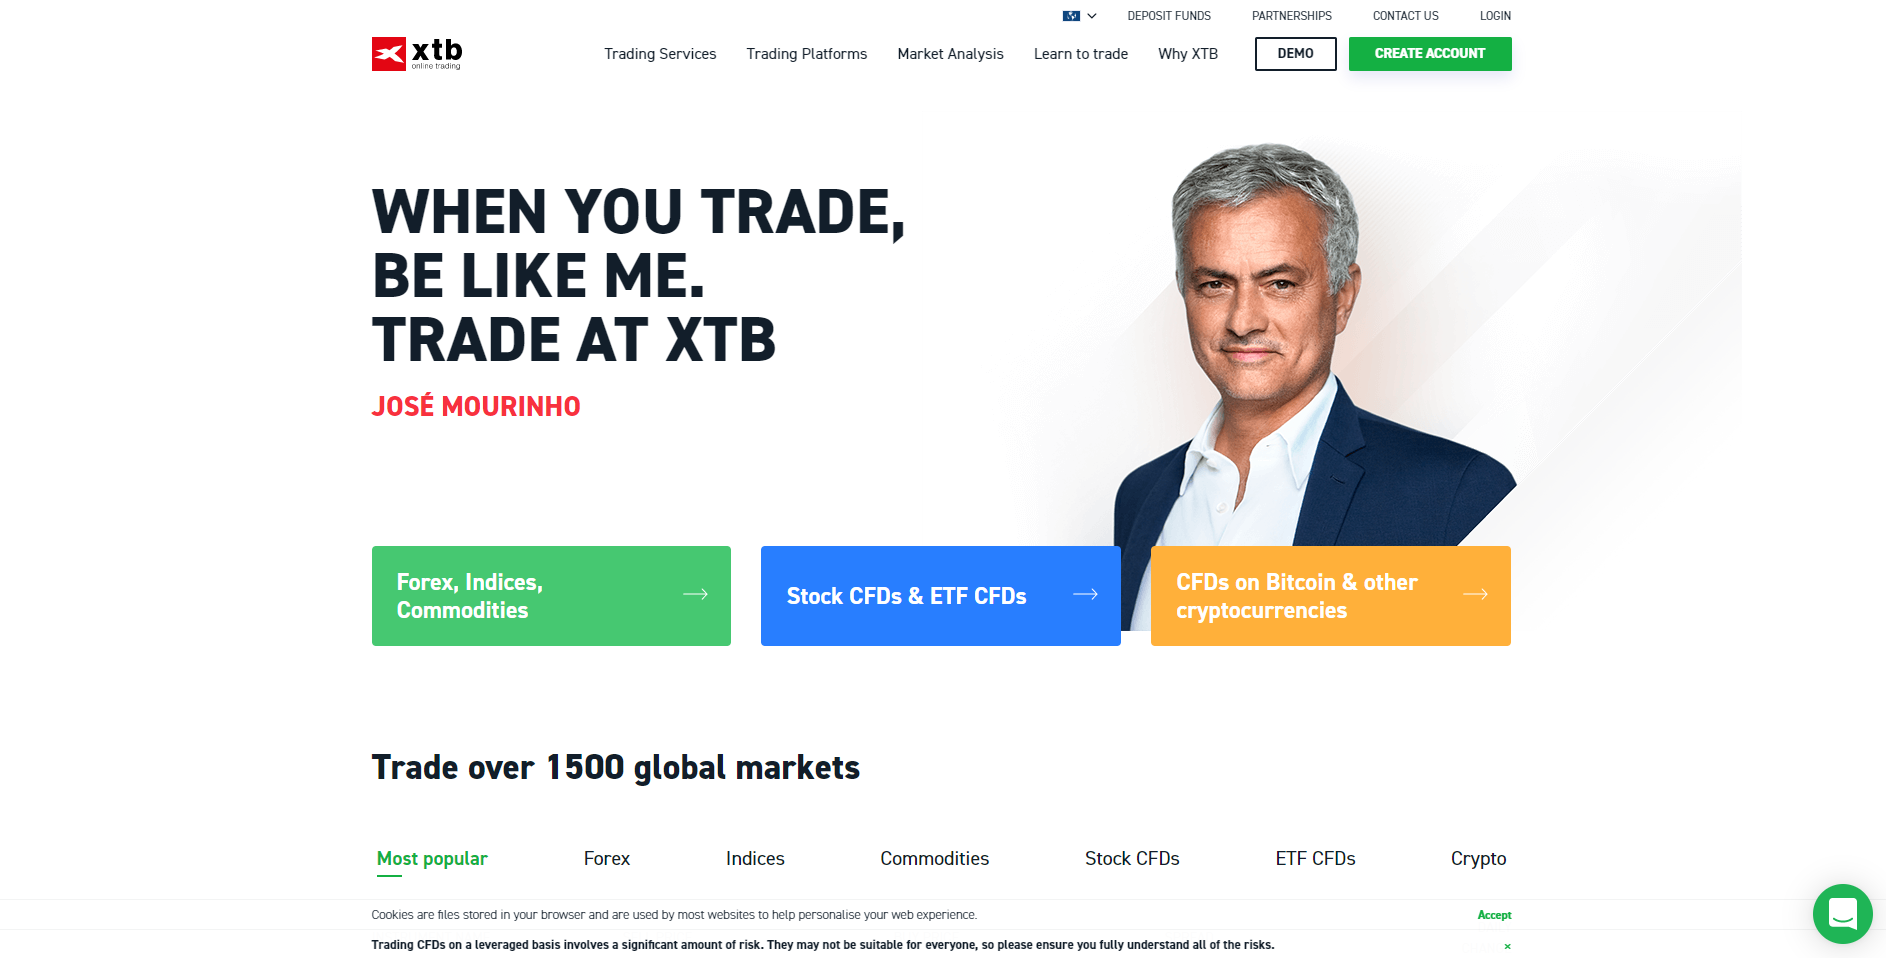 Official website of the forex platform XTB